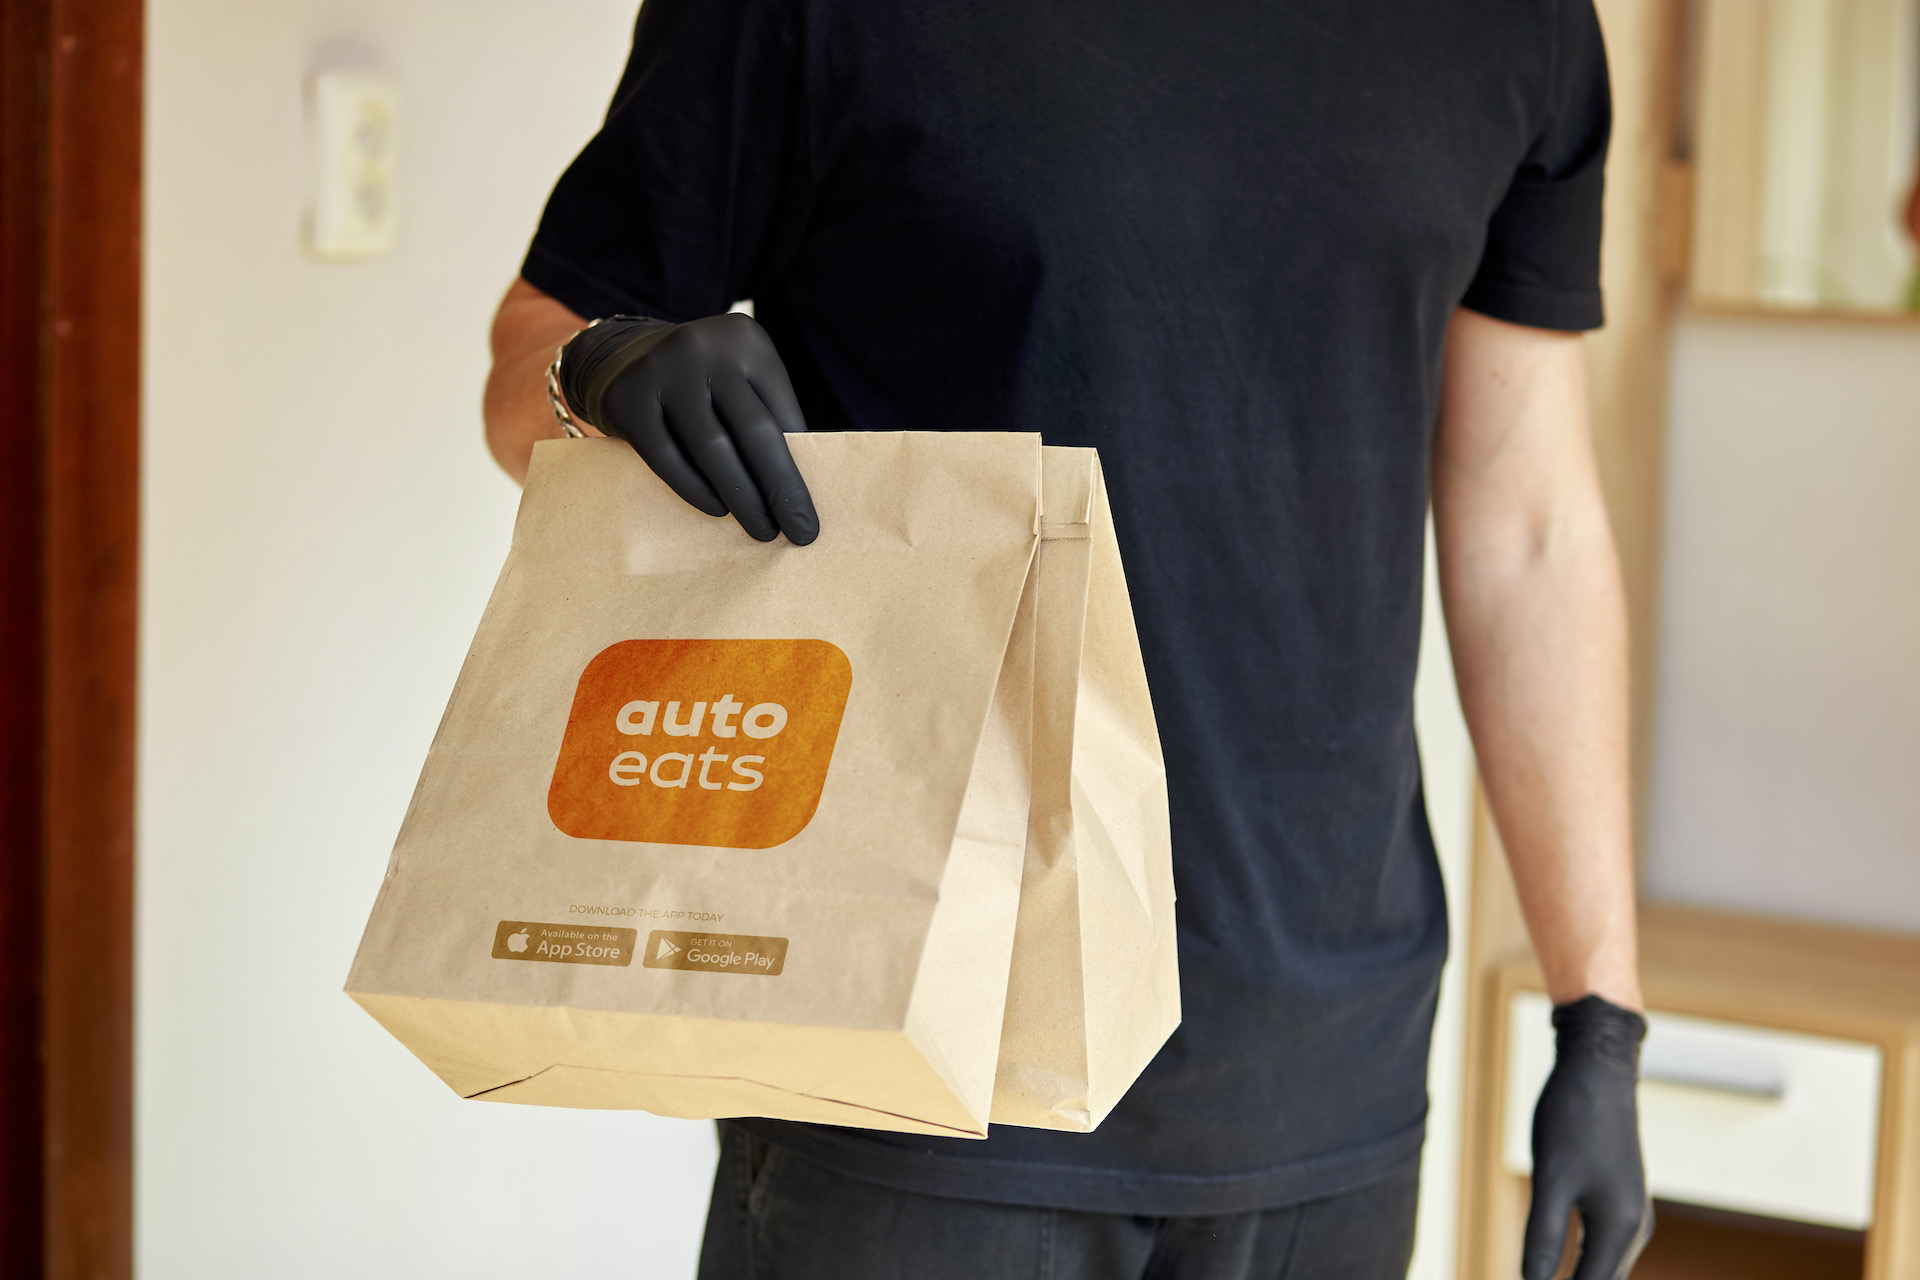 GOTCHA! AutoApp food delivery service prank revealed